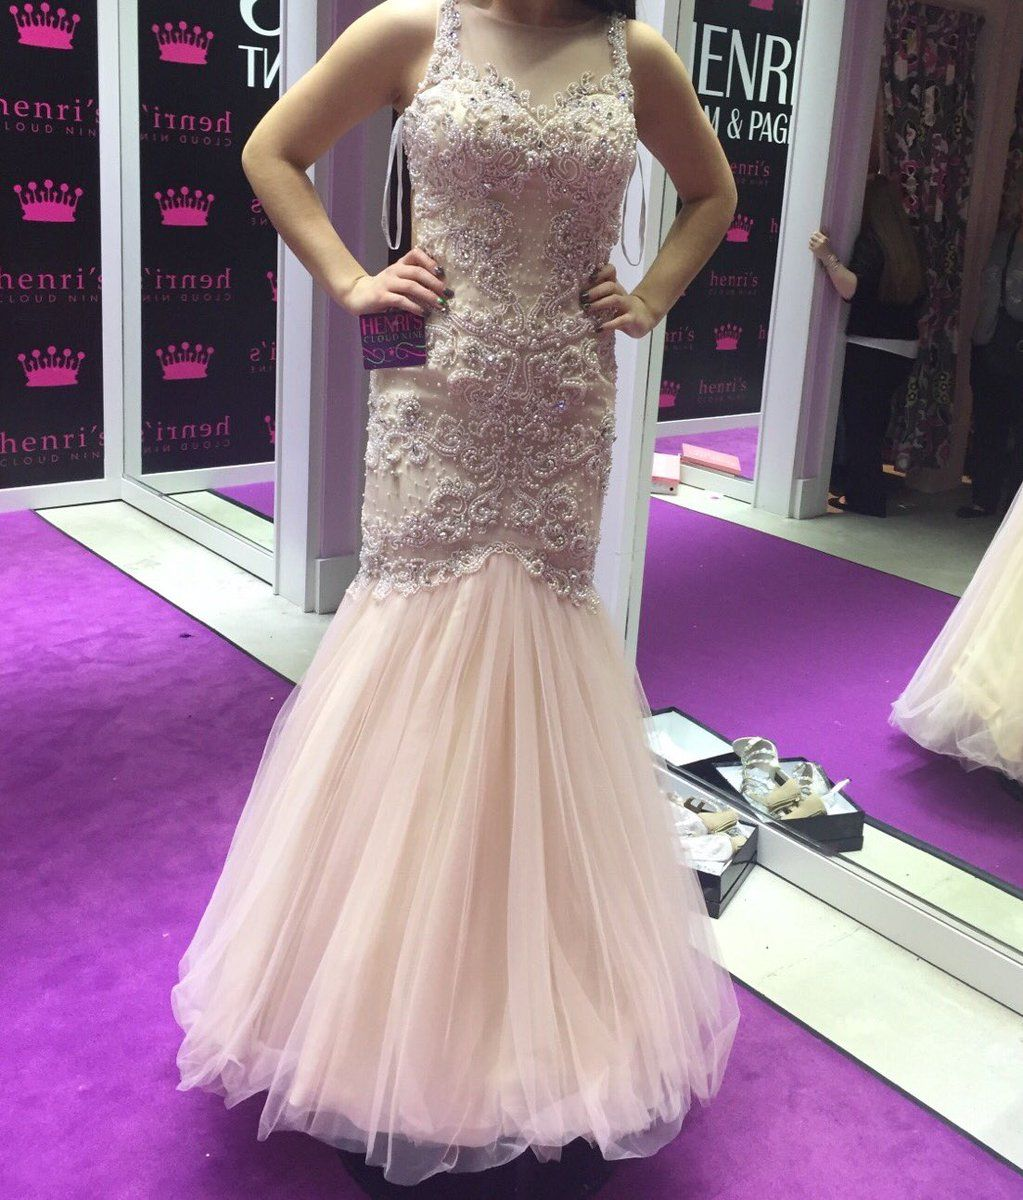 Fashion prom dresses prom dress coc prom dress prom and gowns